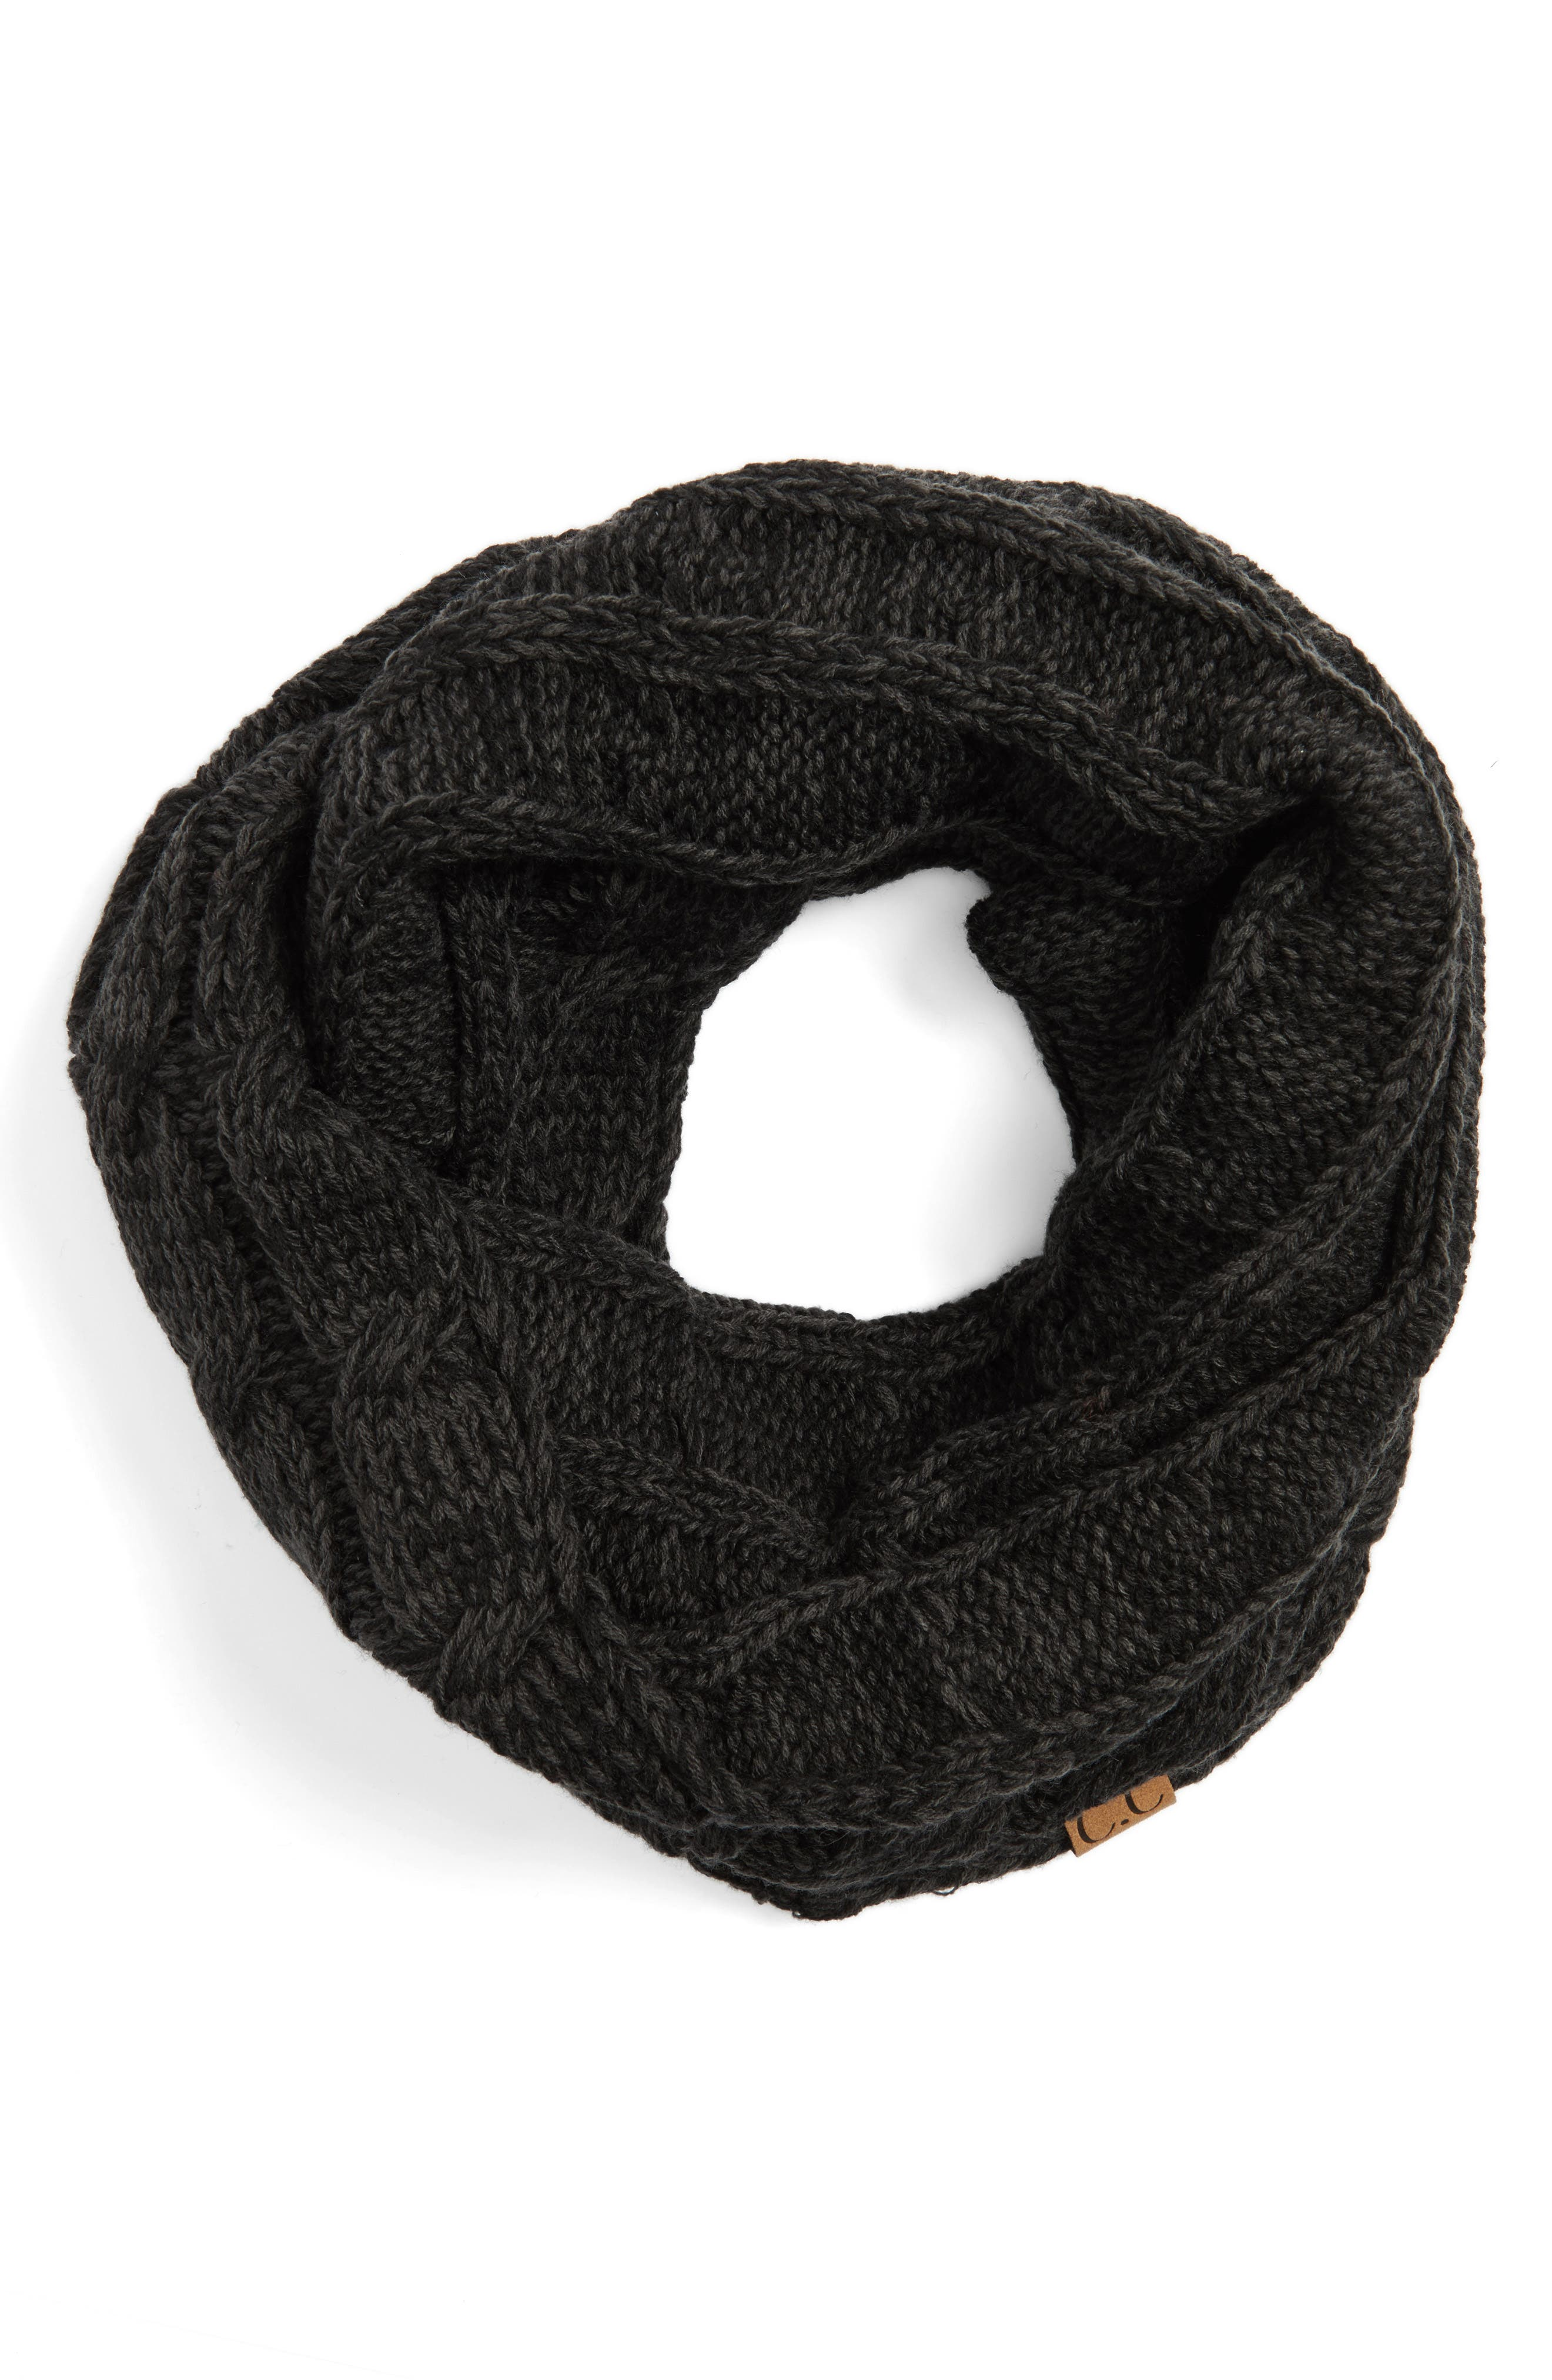 Knit Infinity Scarf,                             Alternate thumbnail 3, color,                             Black/ Grey